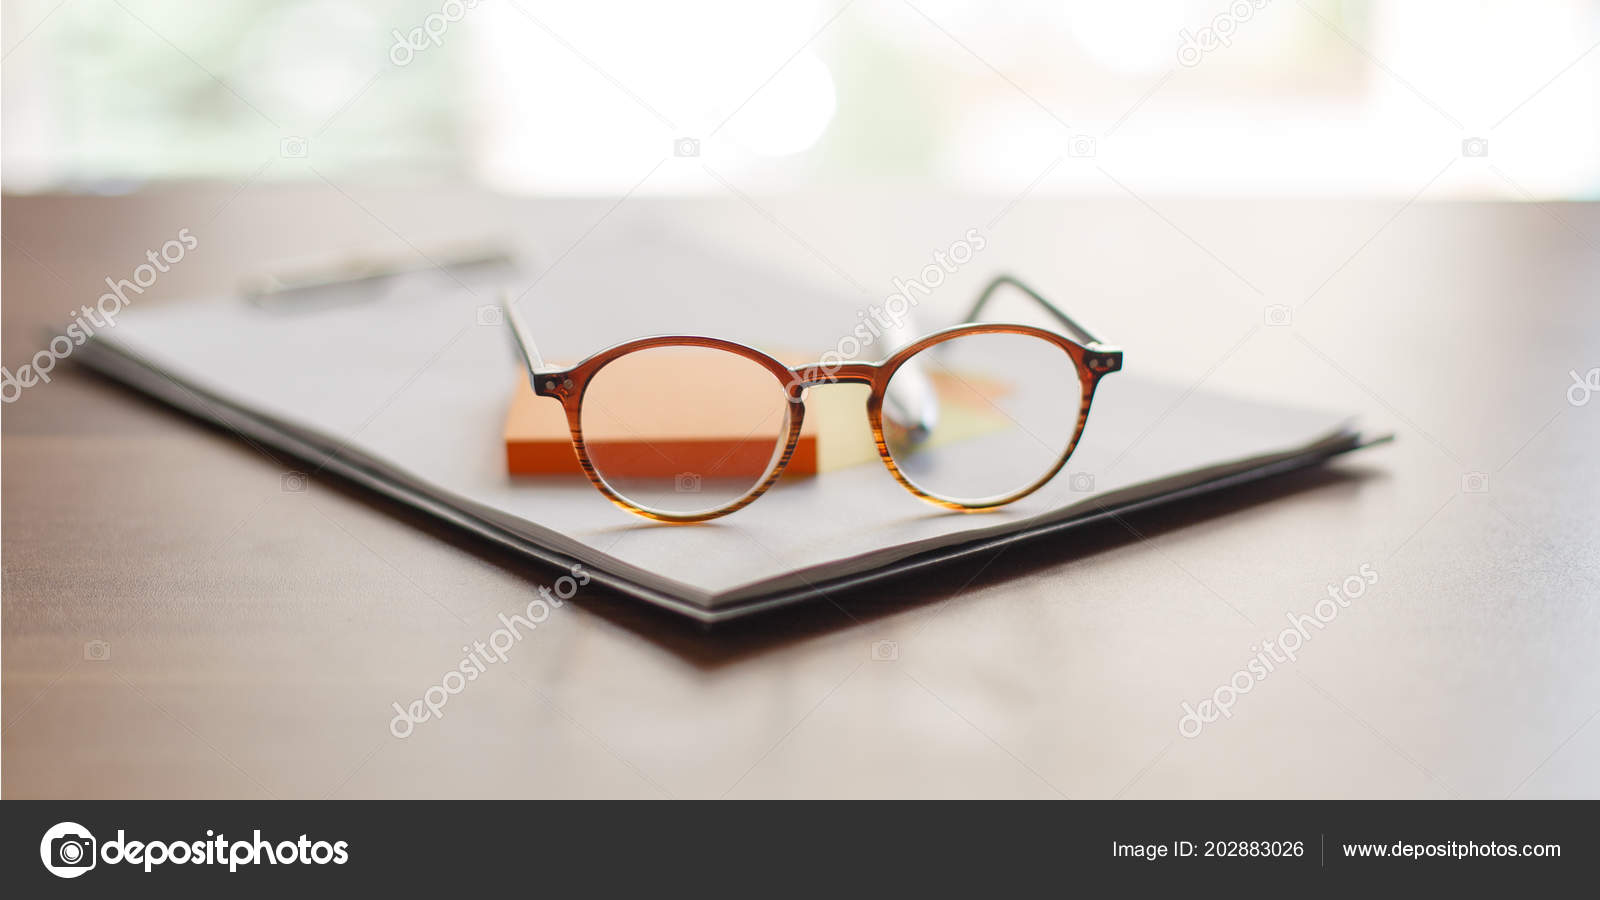 Design Thinking Finding New Idea Startup Glasses Tablet Colored